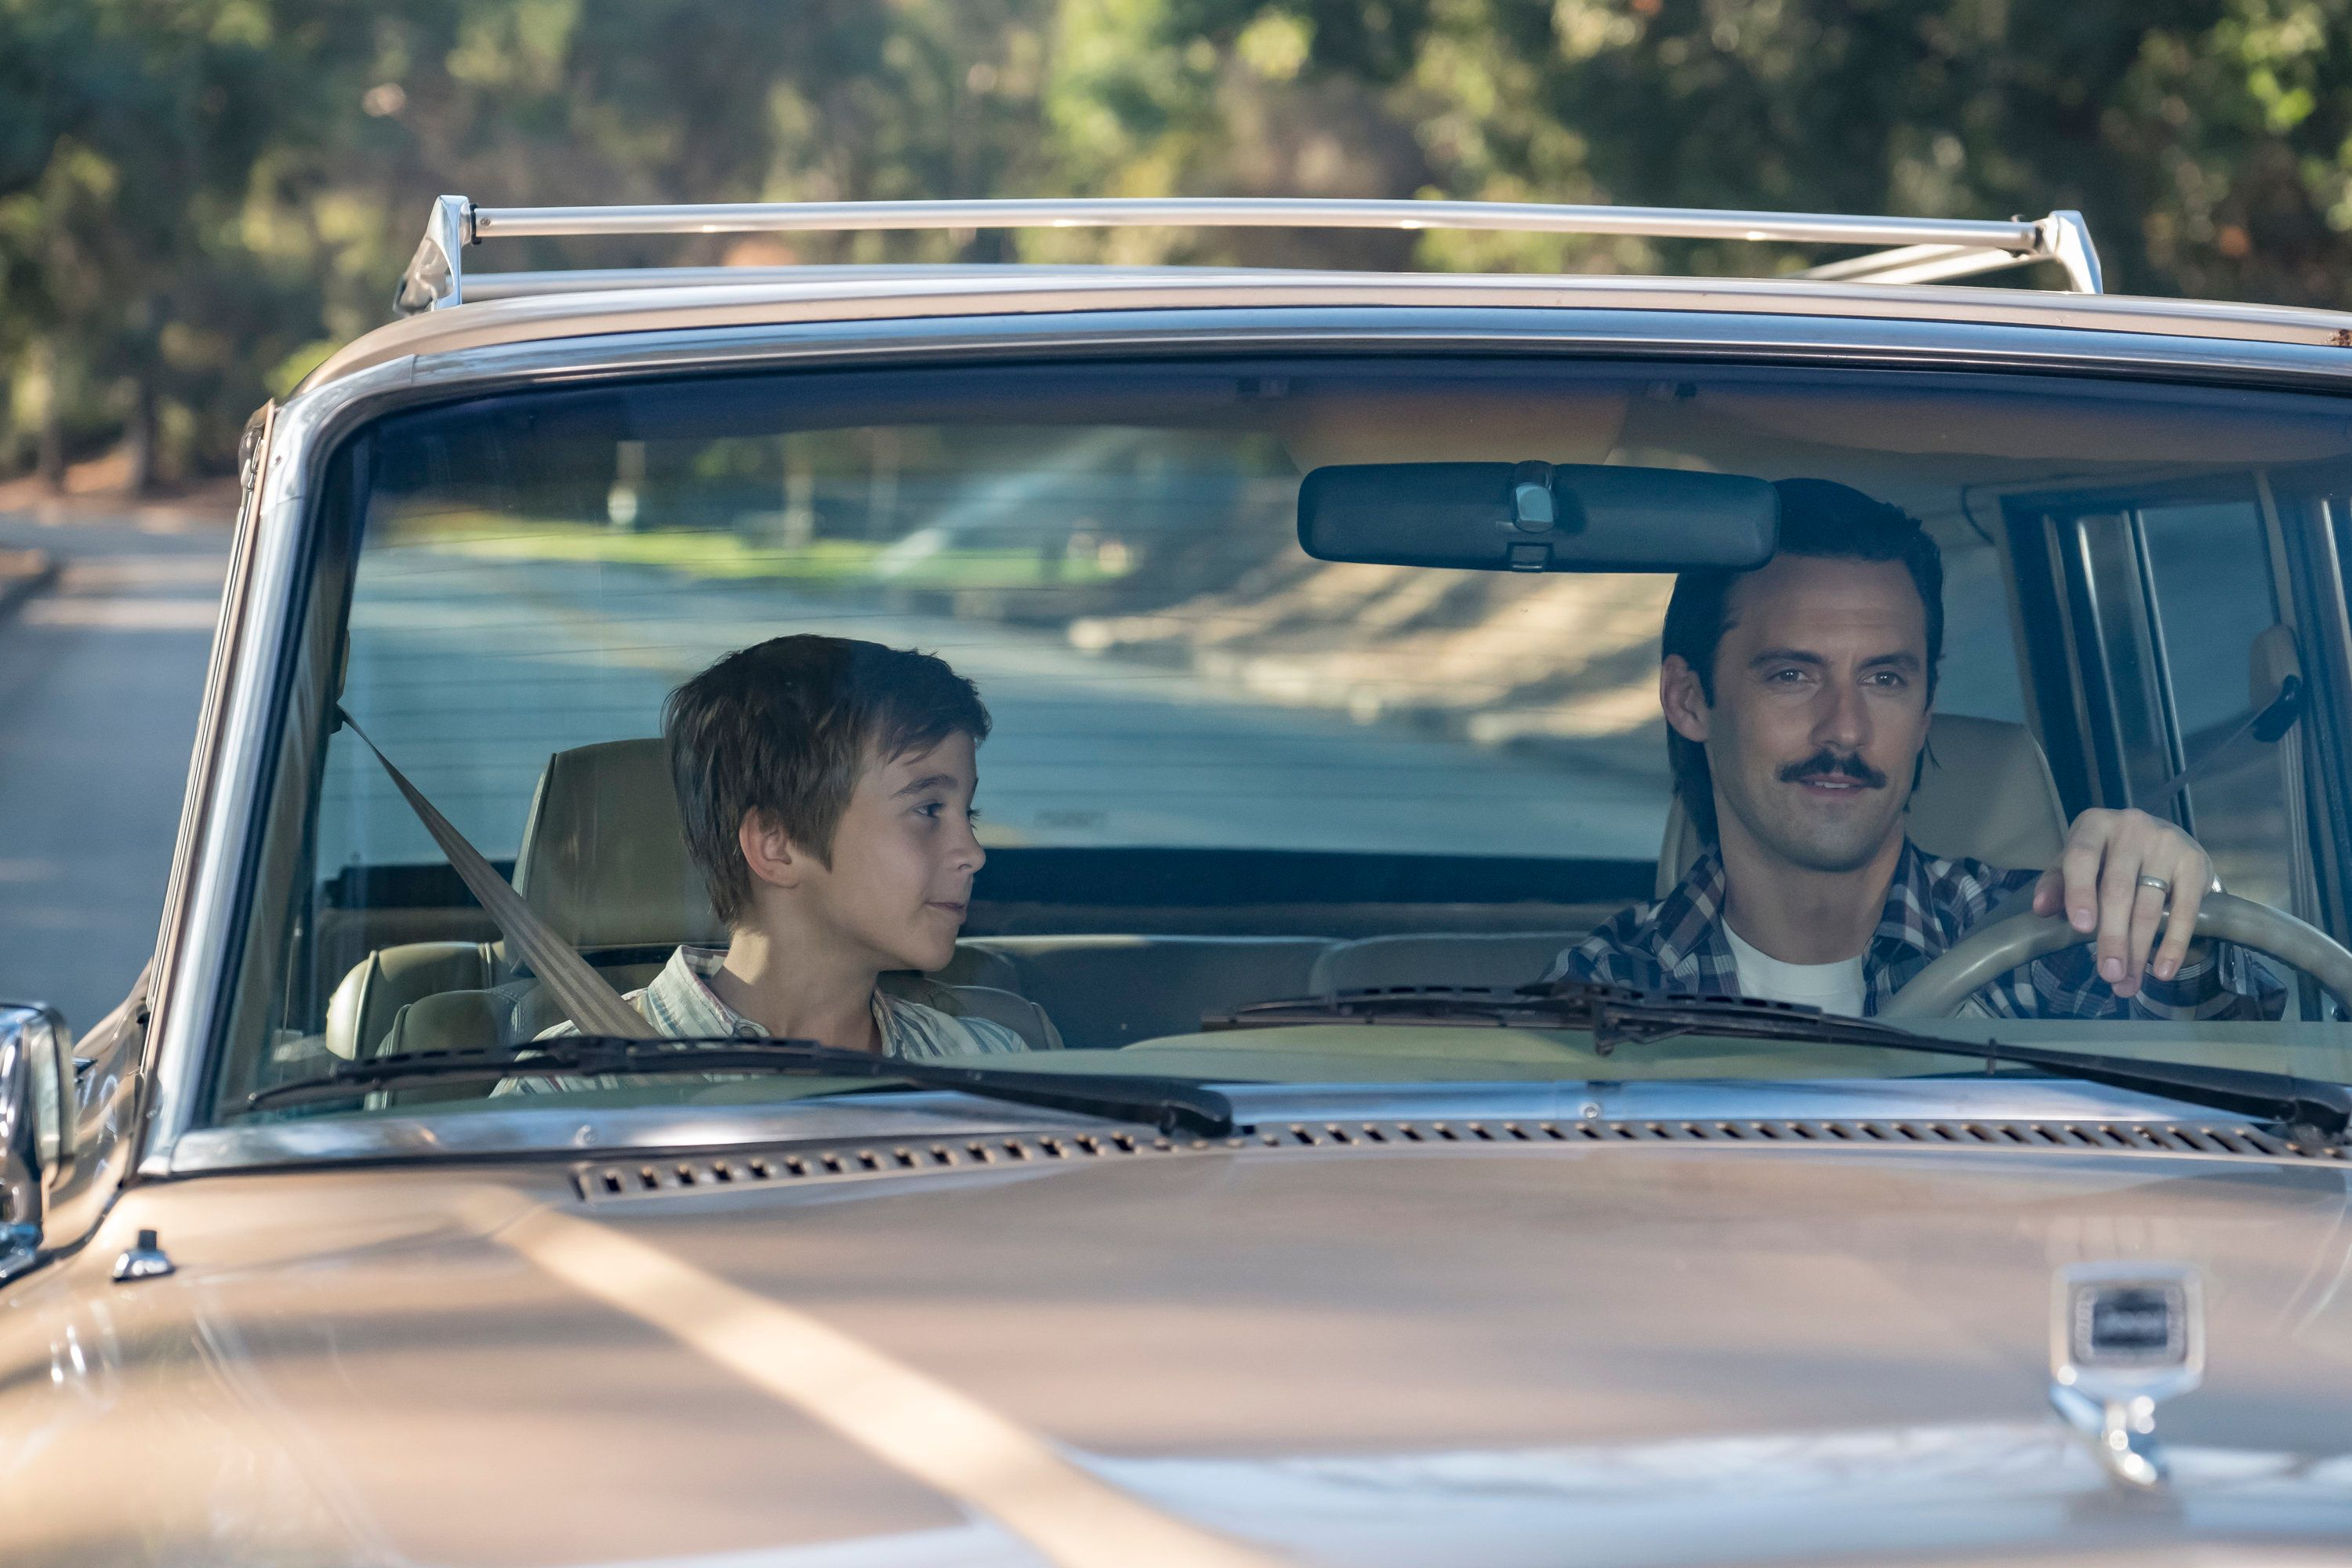 Parker Bates as Young Kevin and Milo Ventimiglia as Jack in